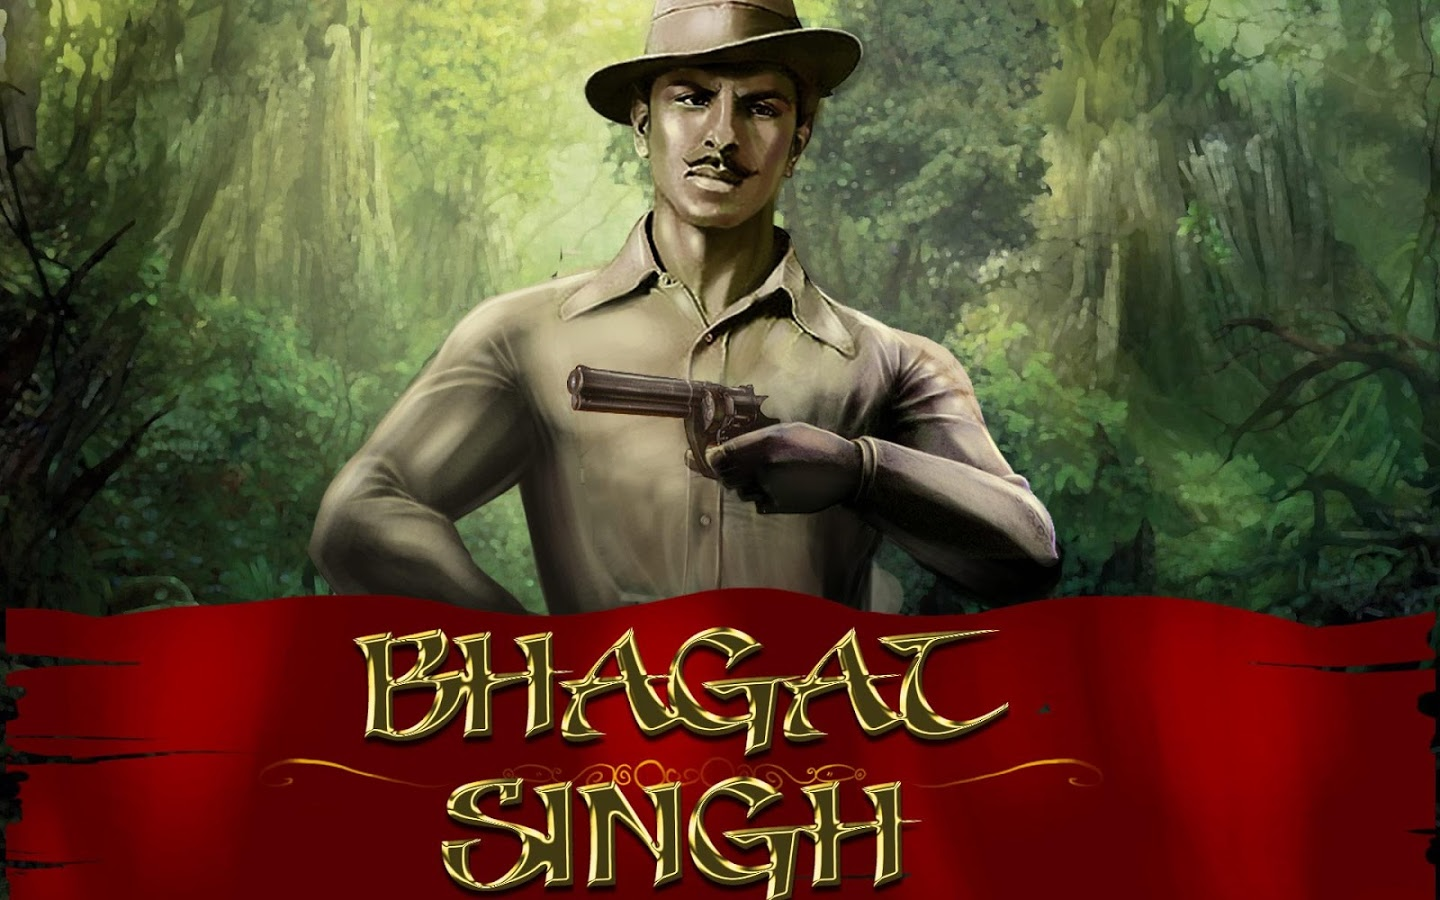 India Will Never Forget This Dropout's Sacrifice - Remembering Bhagat Singh  26 – Bhagat Singh